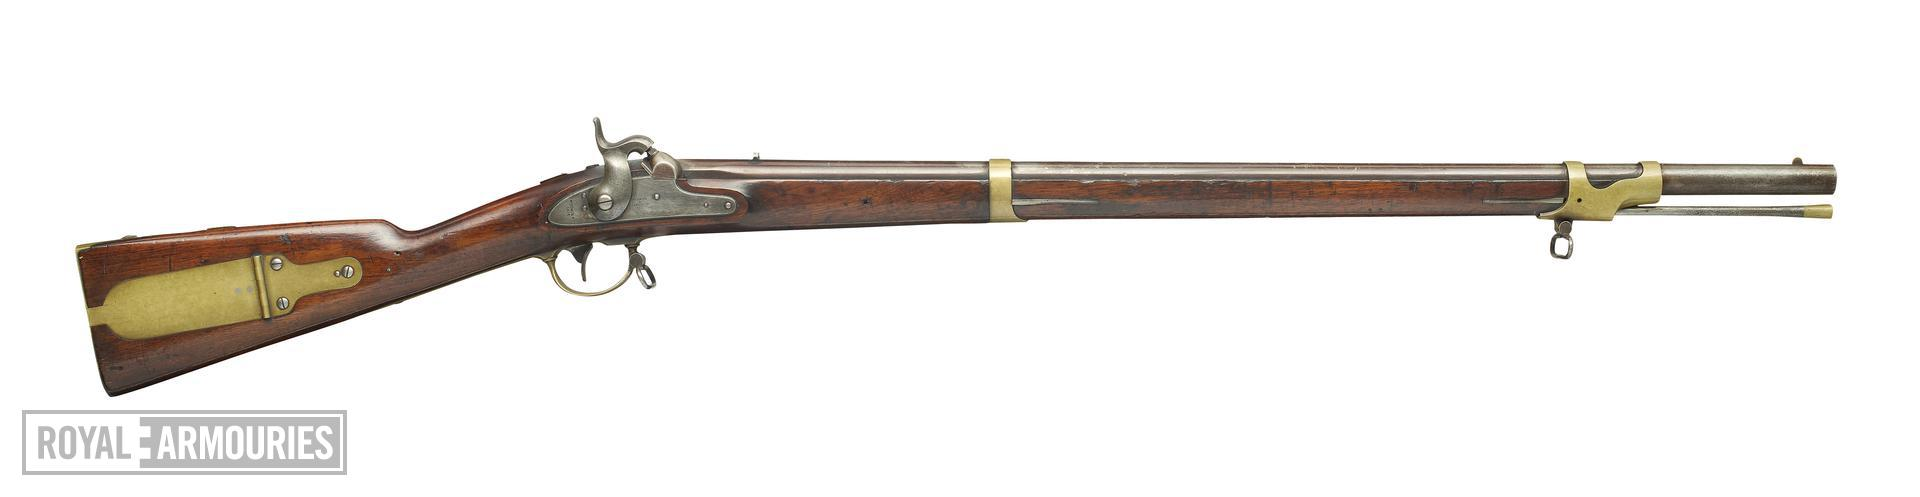 Percussion muzzle-loading rifle - Model 1841 Mississippi Rifle By Robbins & Lawrence